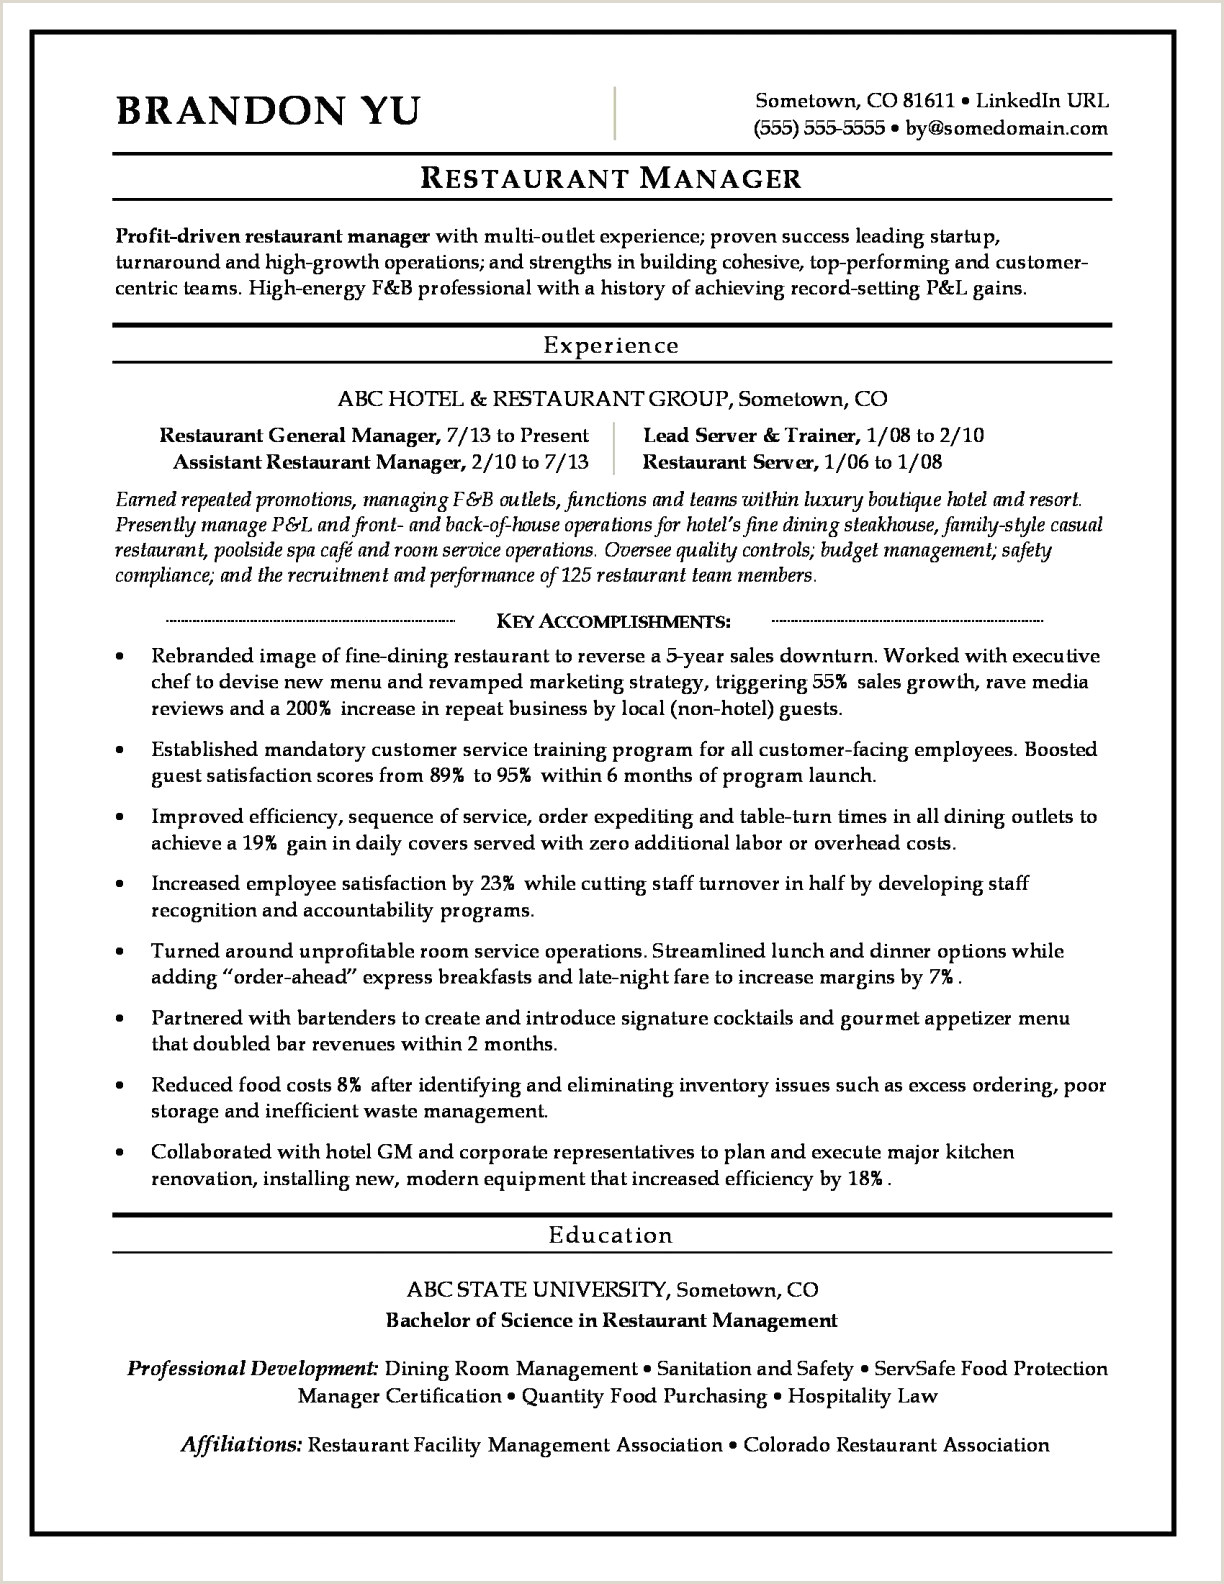 Facilities Management Resume Hotel Manager Resume Sample Best Manager Resume New